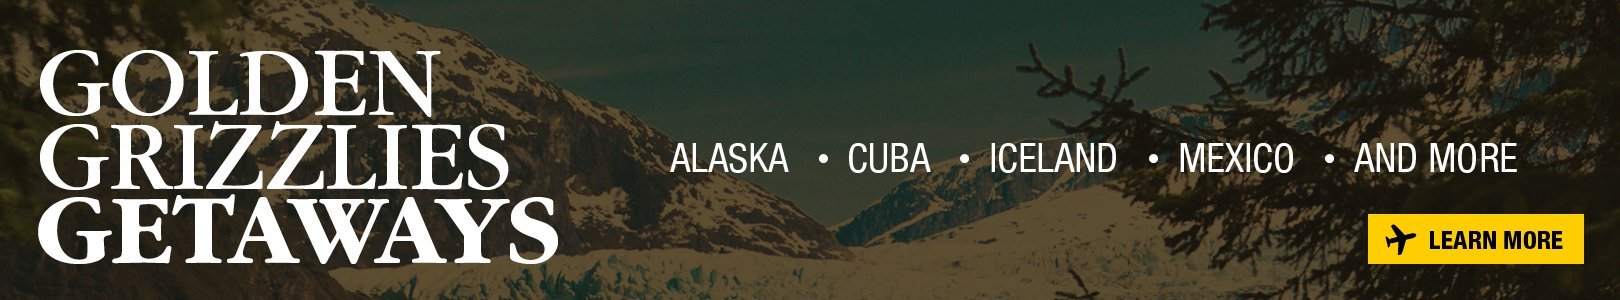 Oakland University Golden Grizzlies Getaways - Alaska, Cuba, Iceland, Mexico, and more.